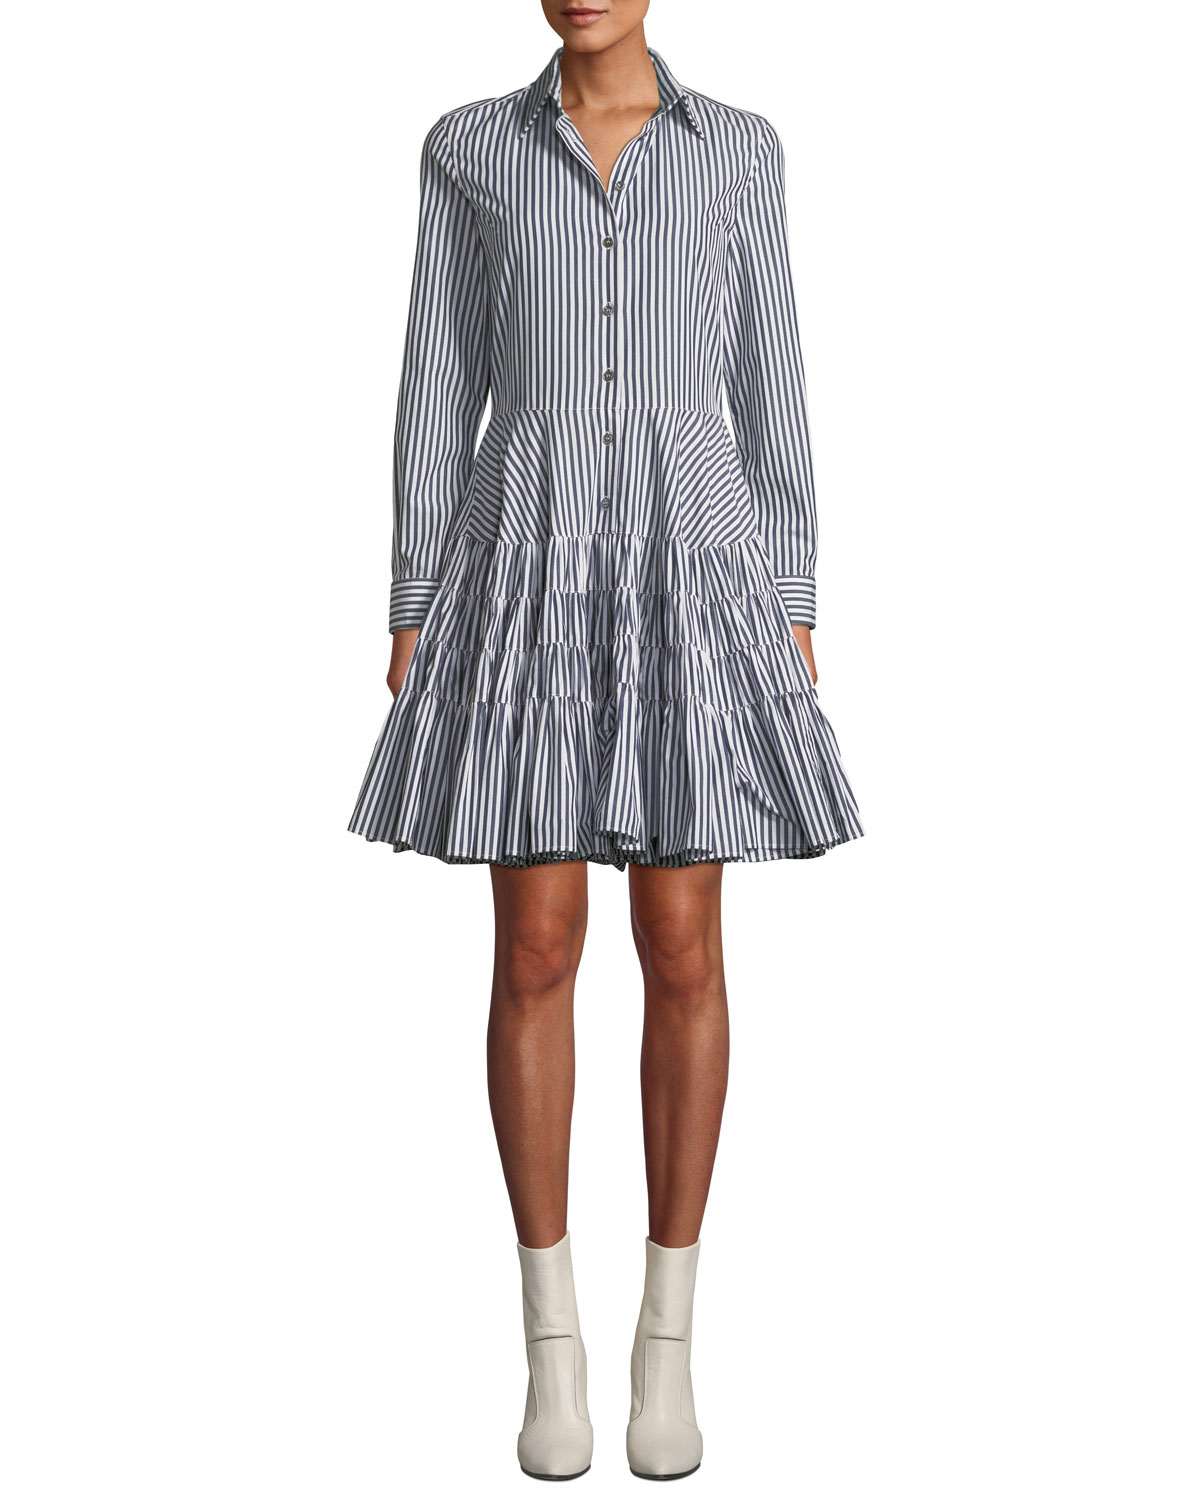 ANAIS JOURDEN Striped Gathered Fit-And-Flare Shirtdress in Blue Pattern